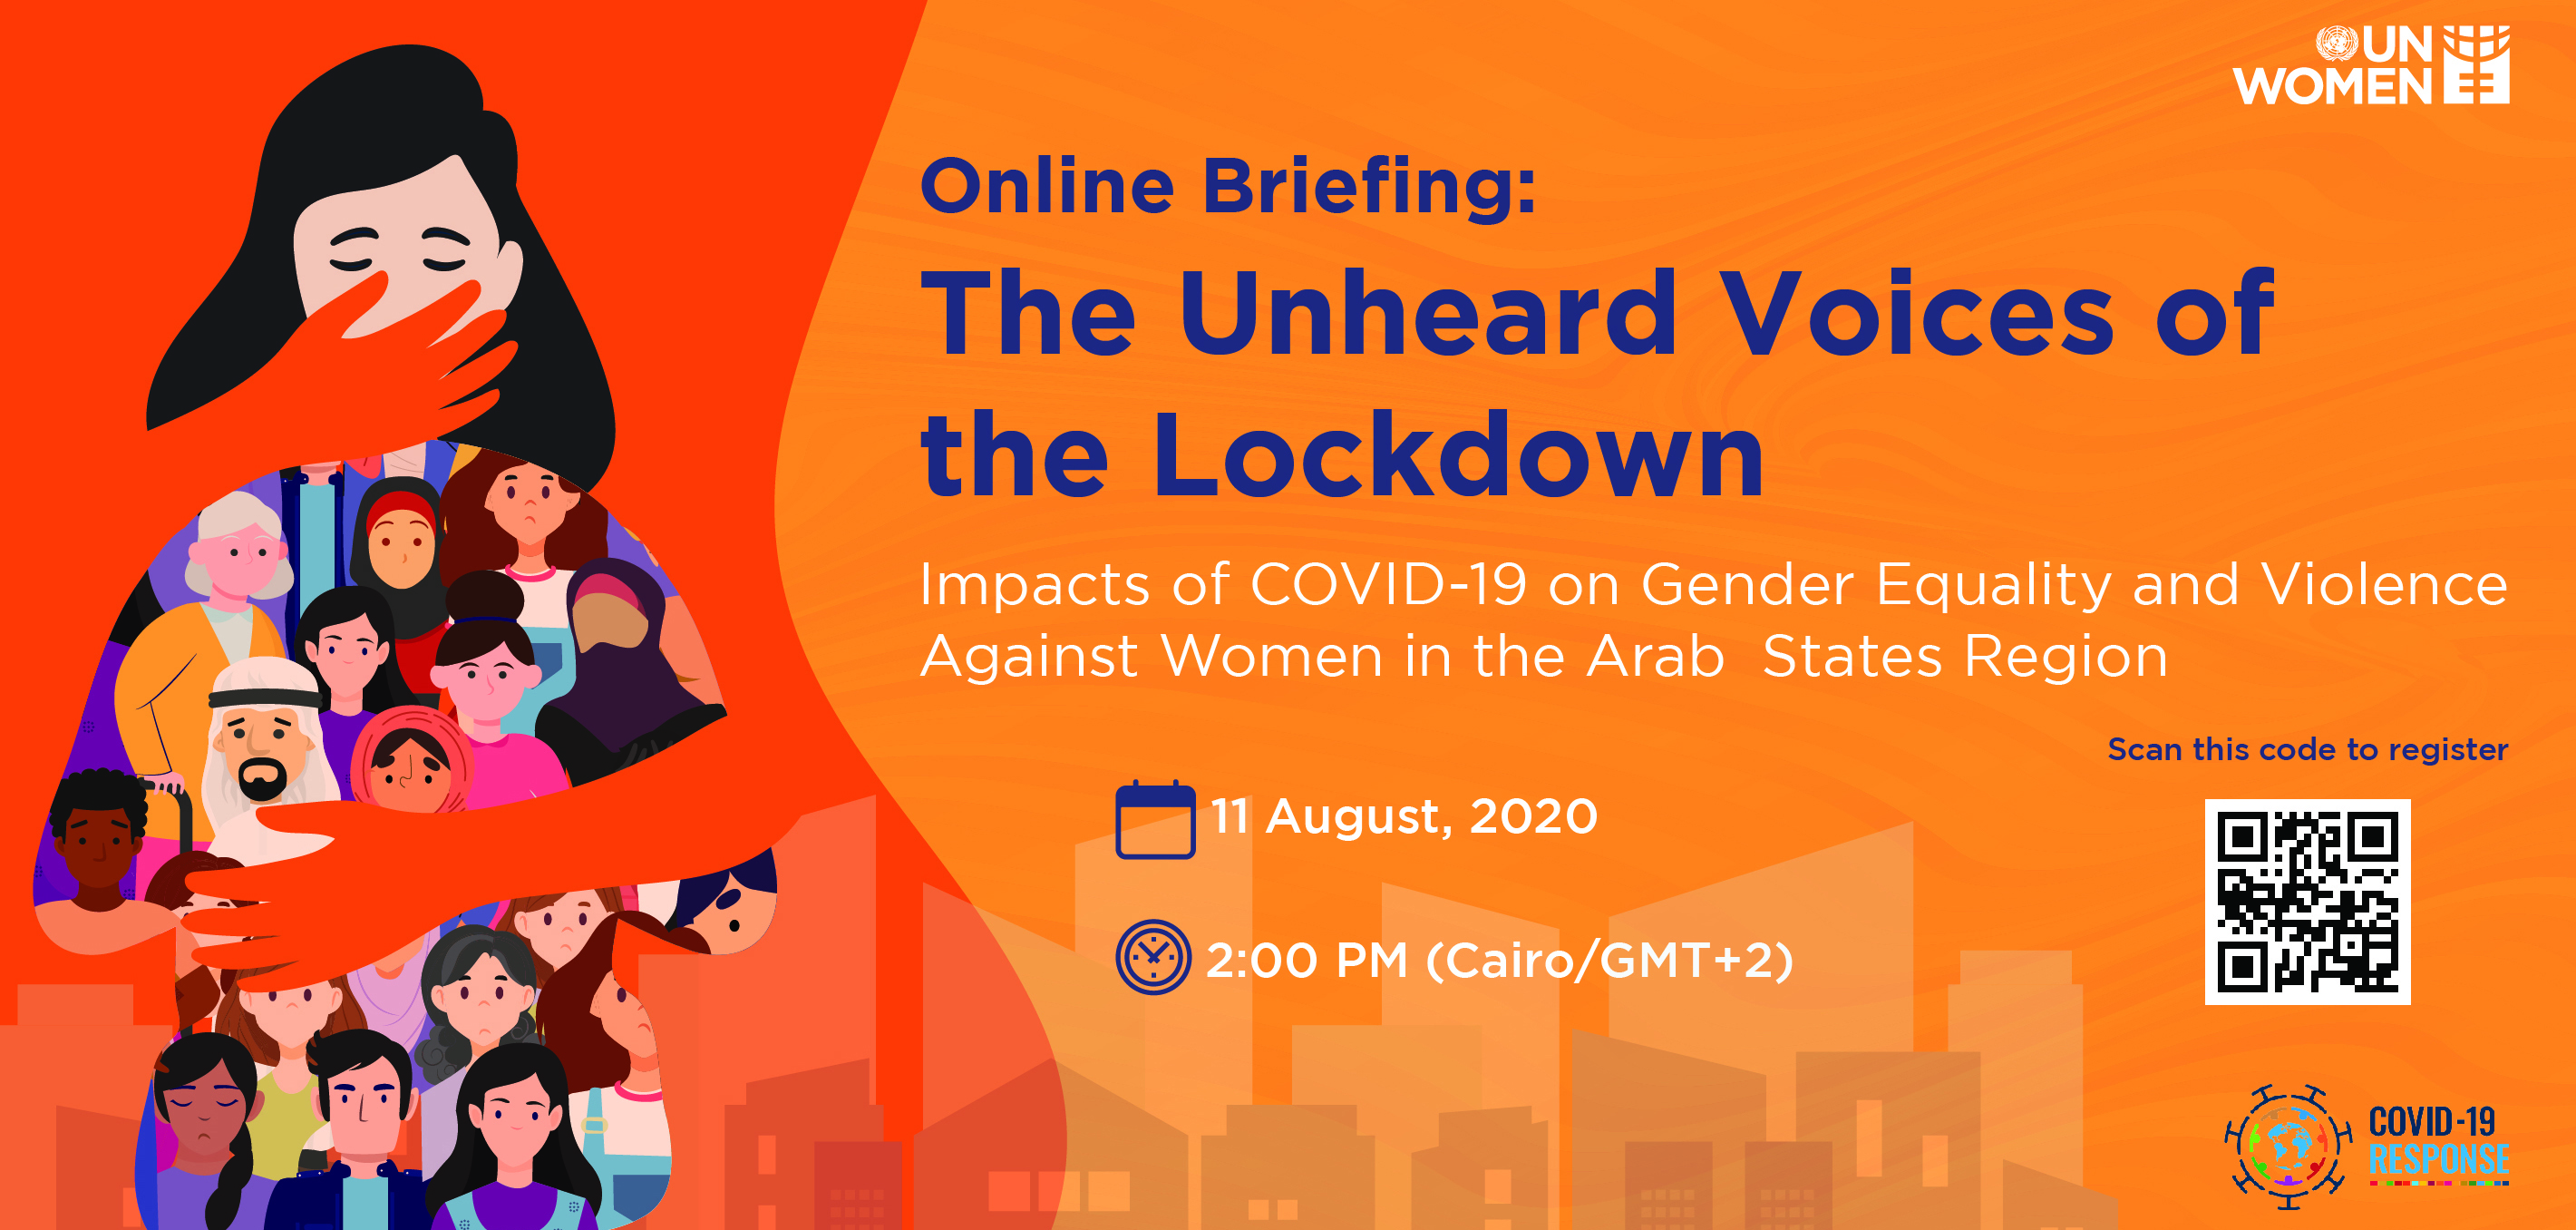 Press release: New UN Women reports reveal the impacts of COVID-19 on Violence Against Women in the Arab States